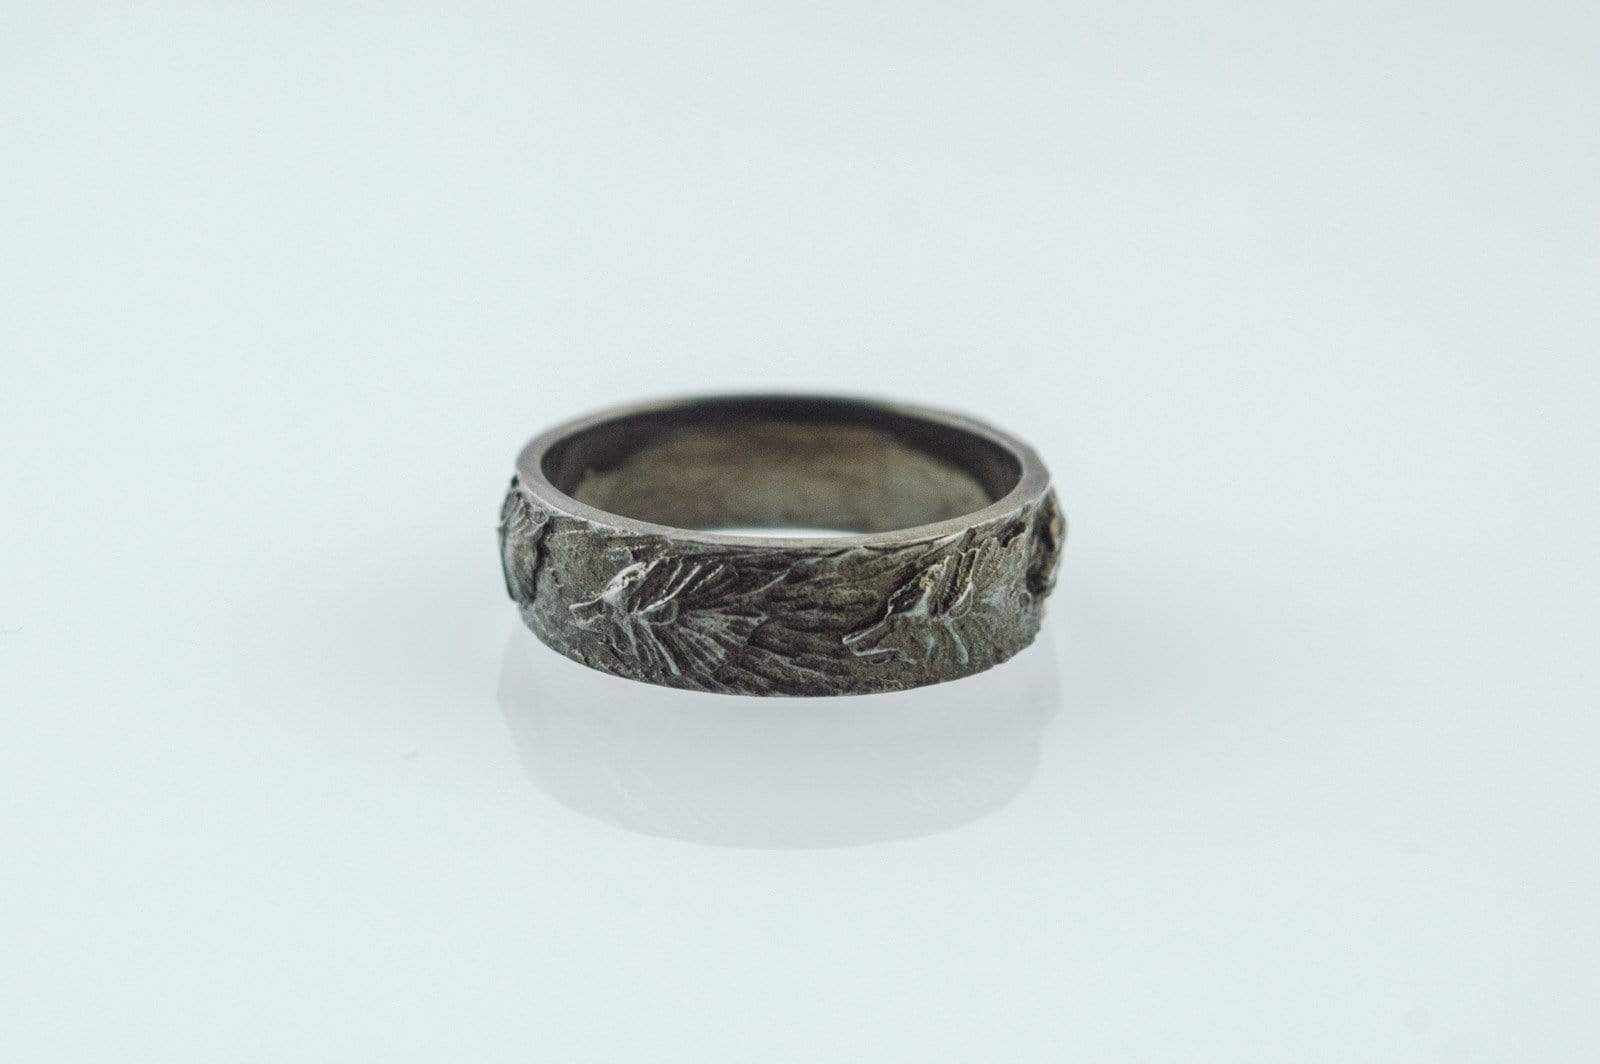 Ancient Smithy VW jewelry Wolf Ornament Ring Ruthenium Plated Sterling Silver Black Limited Edition Norse Ring